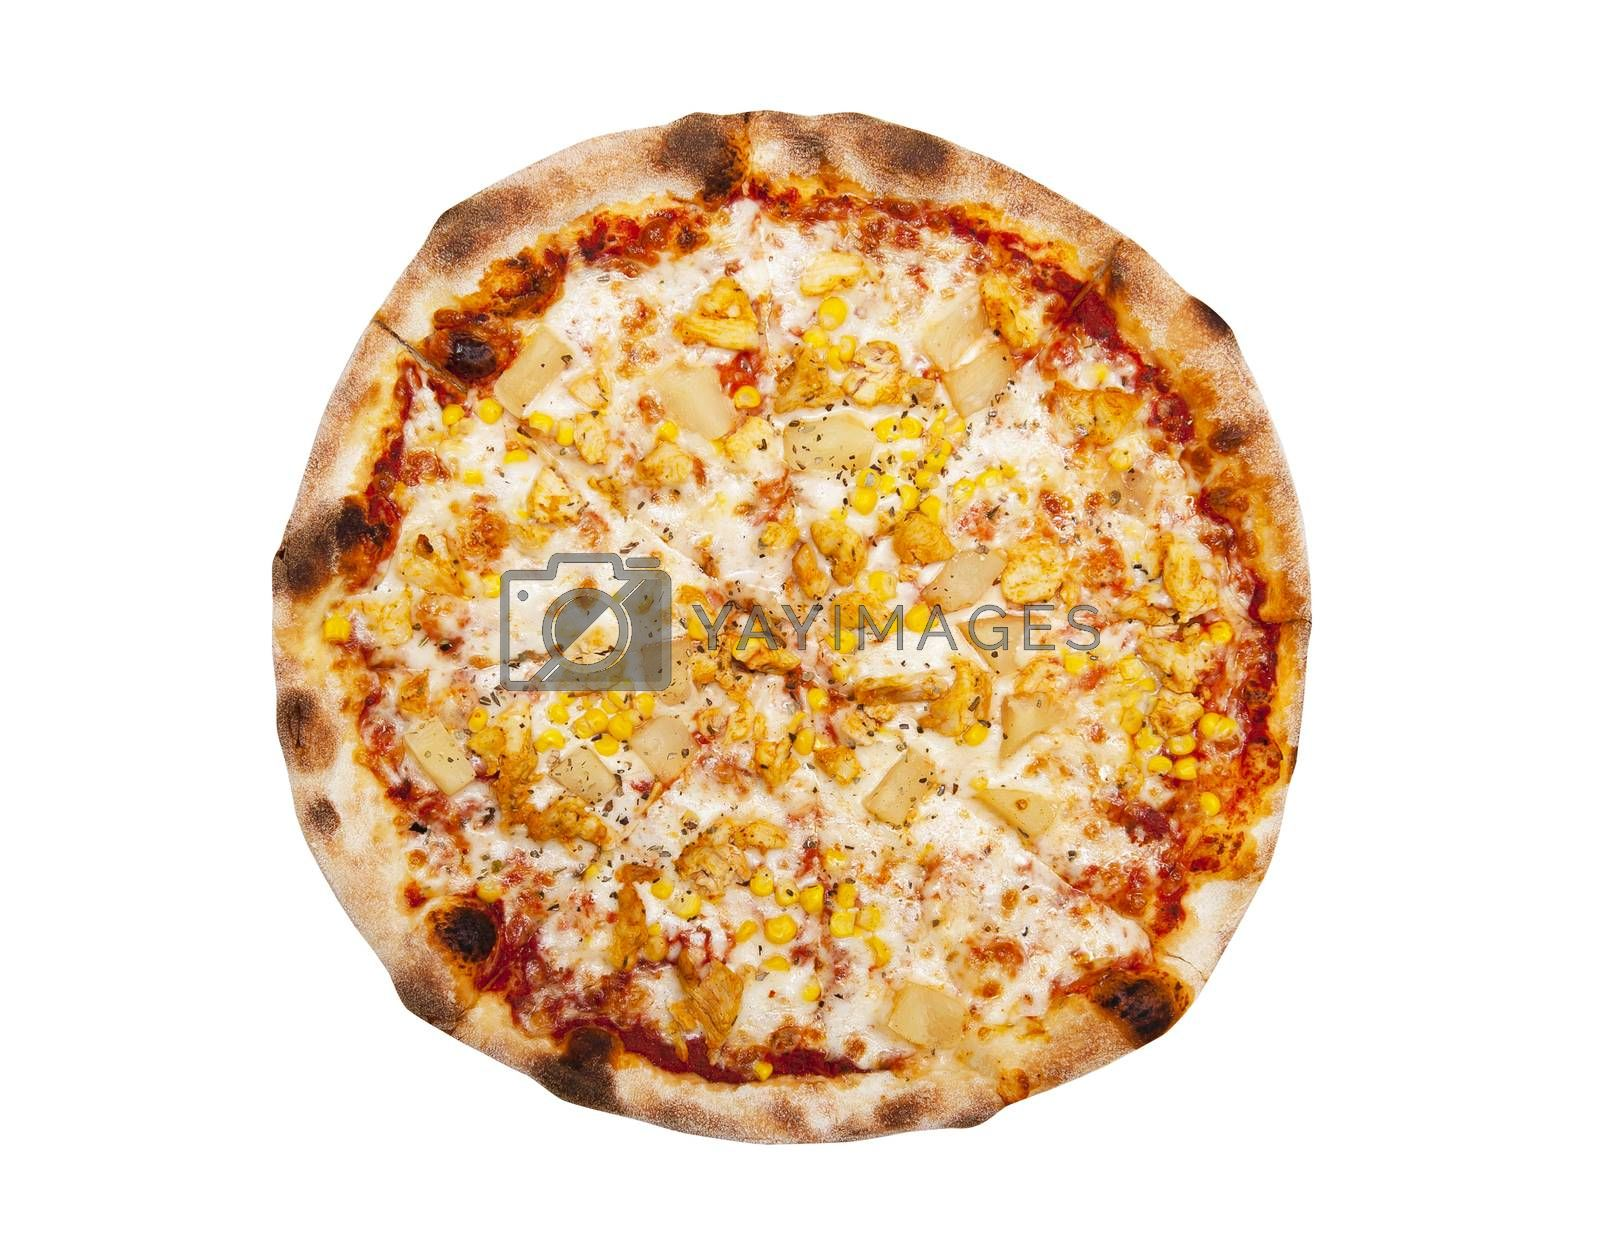 Pizza wish tuna fish and pineapple isolated on the white background